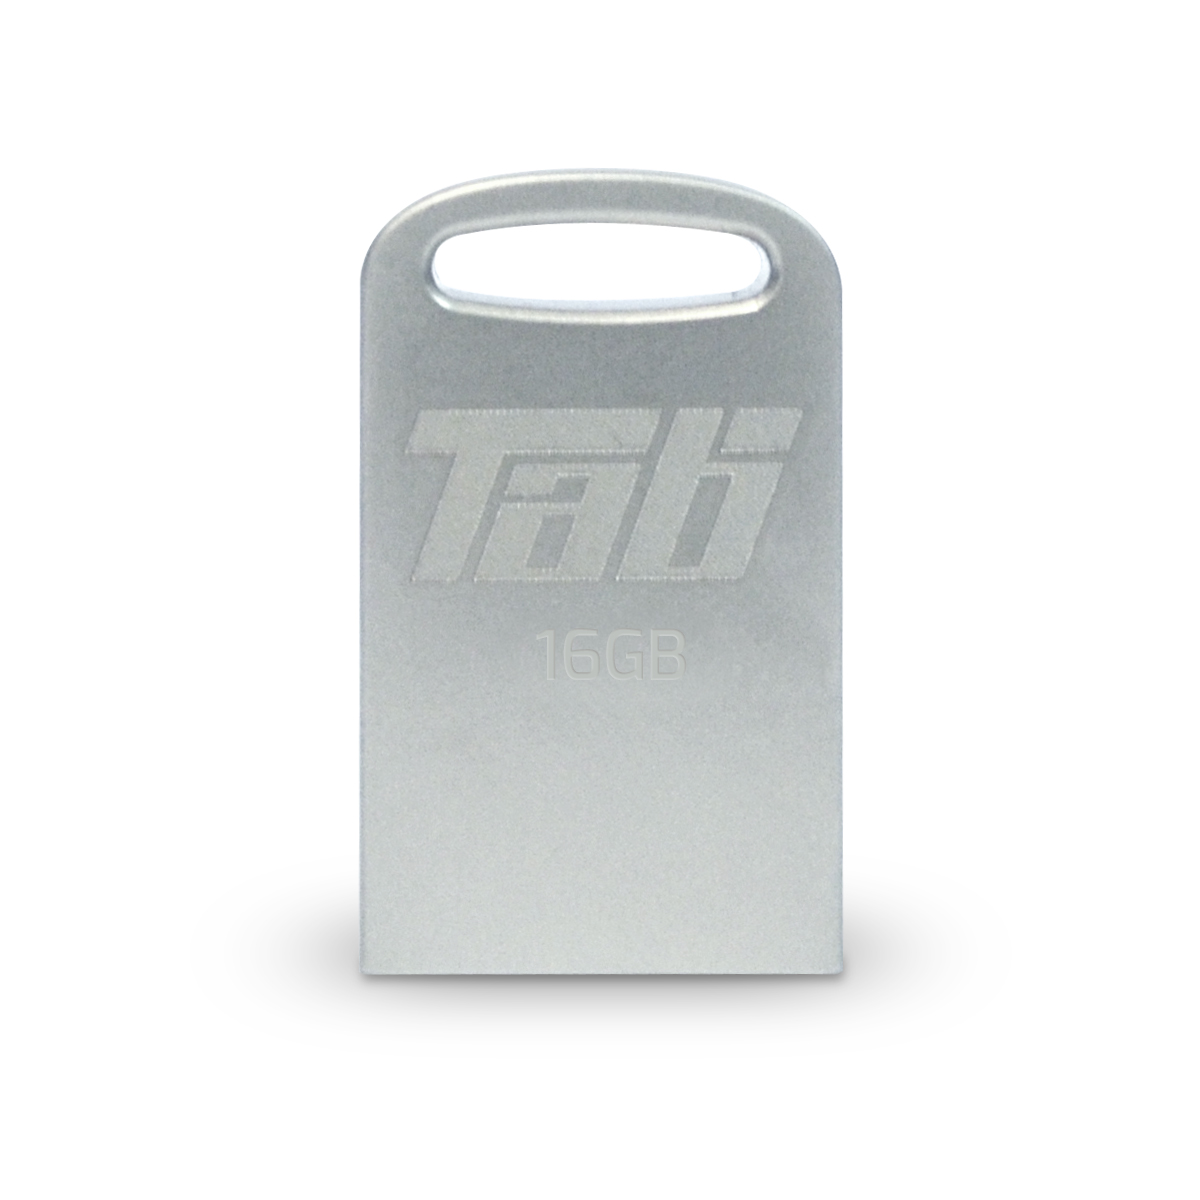 Patriot Lifestyle Tab 16GB USB3.0 Flash Drive